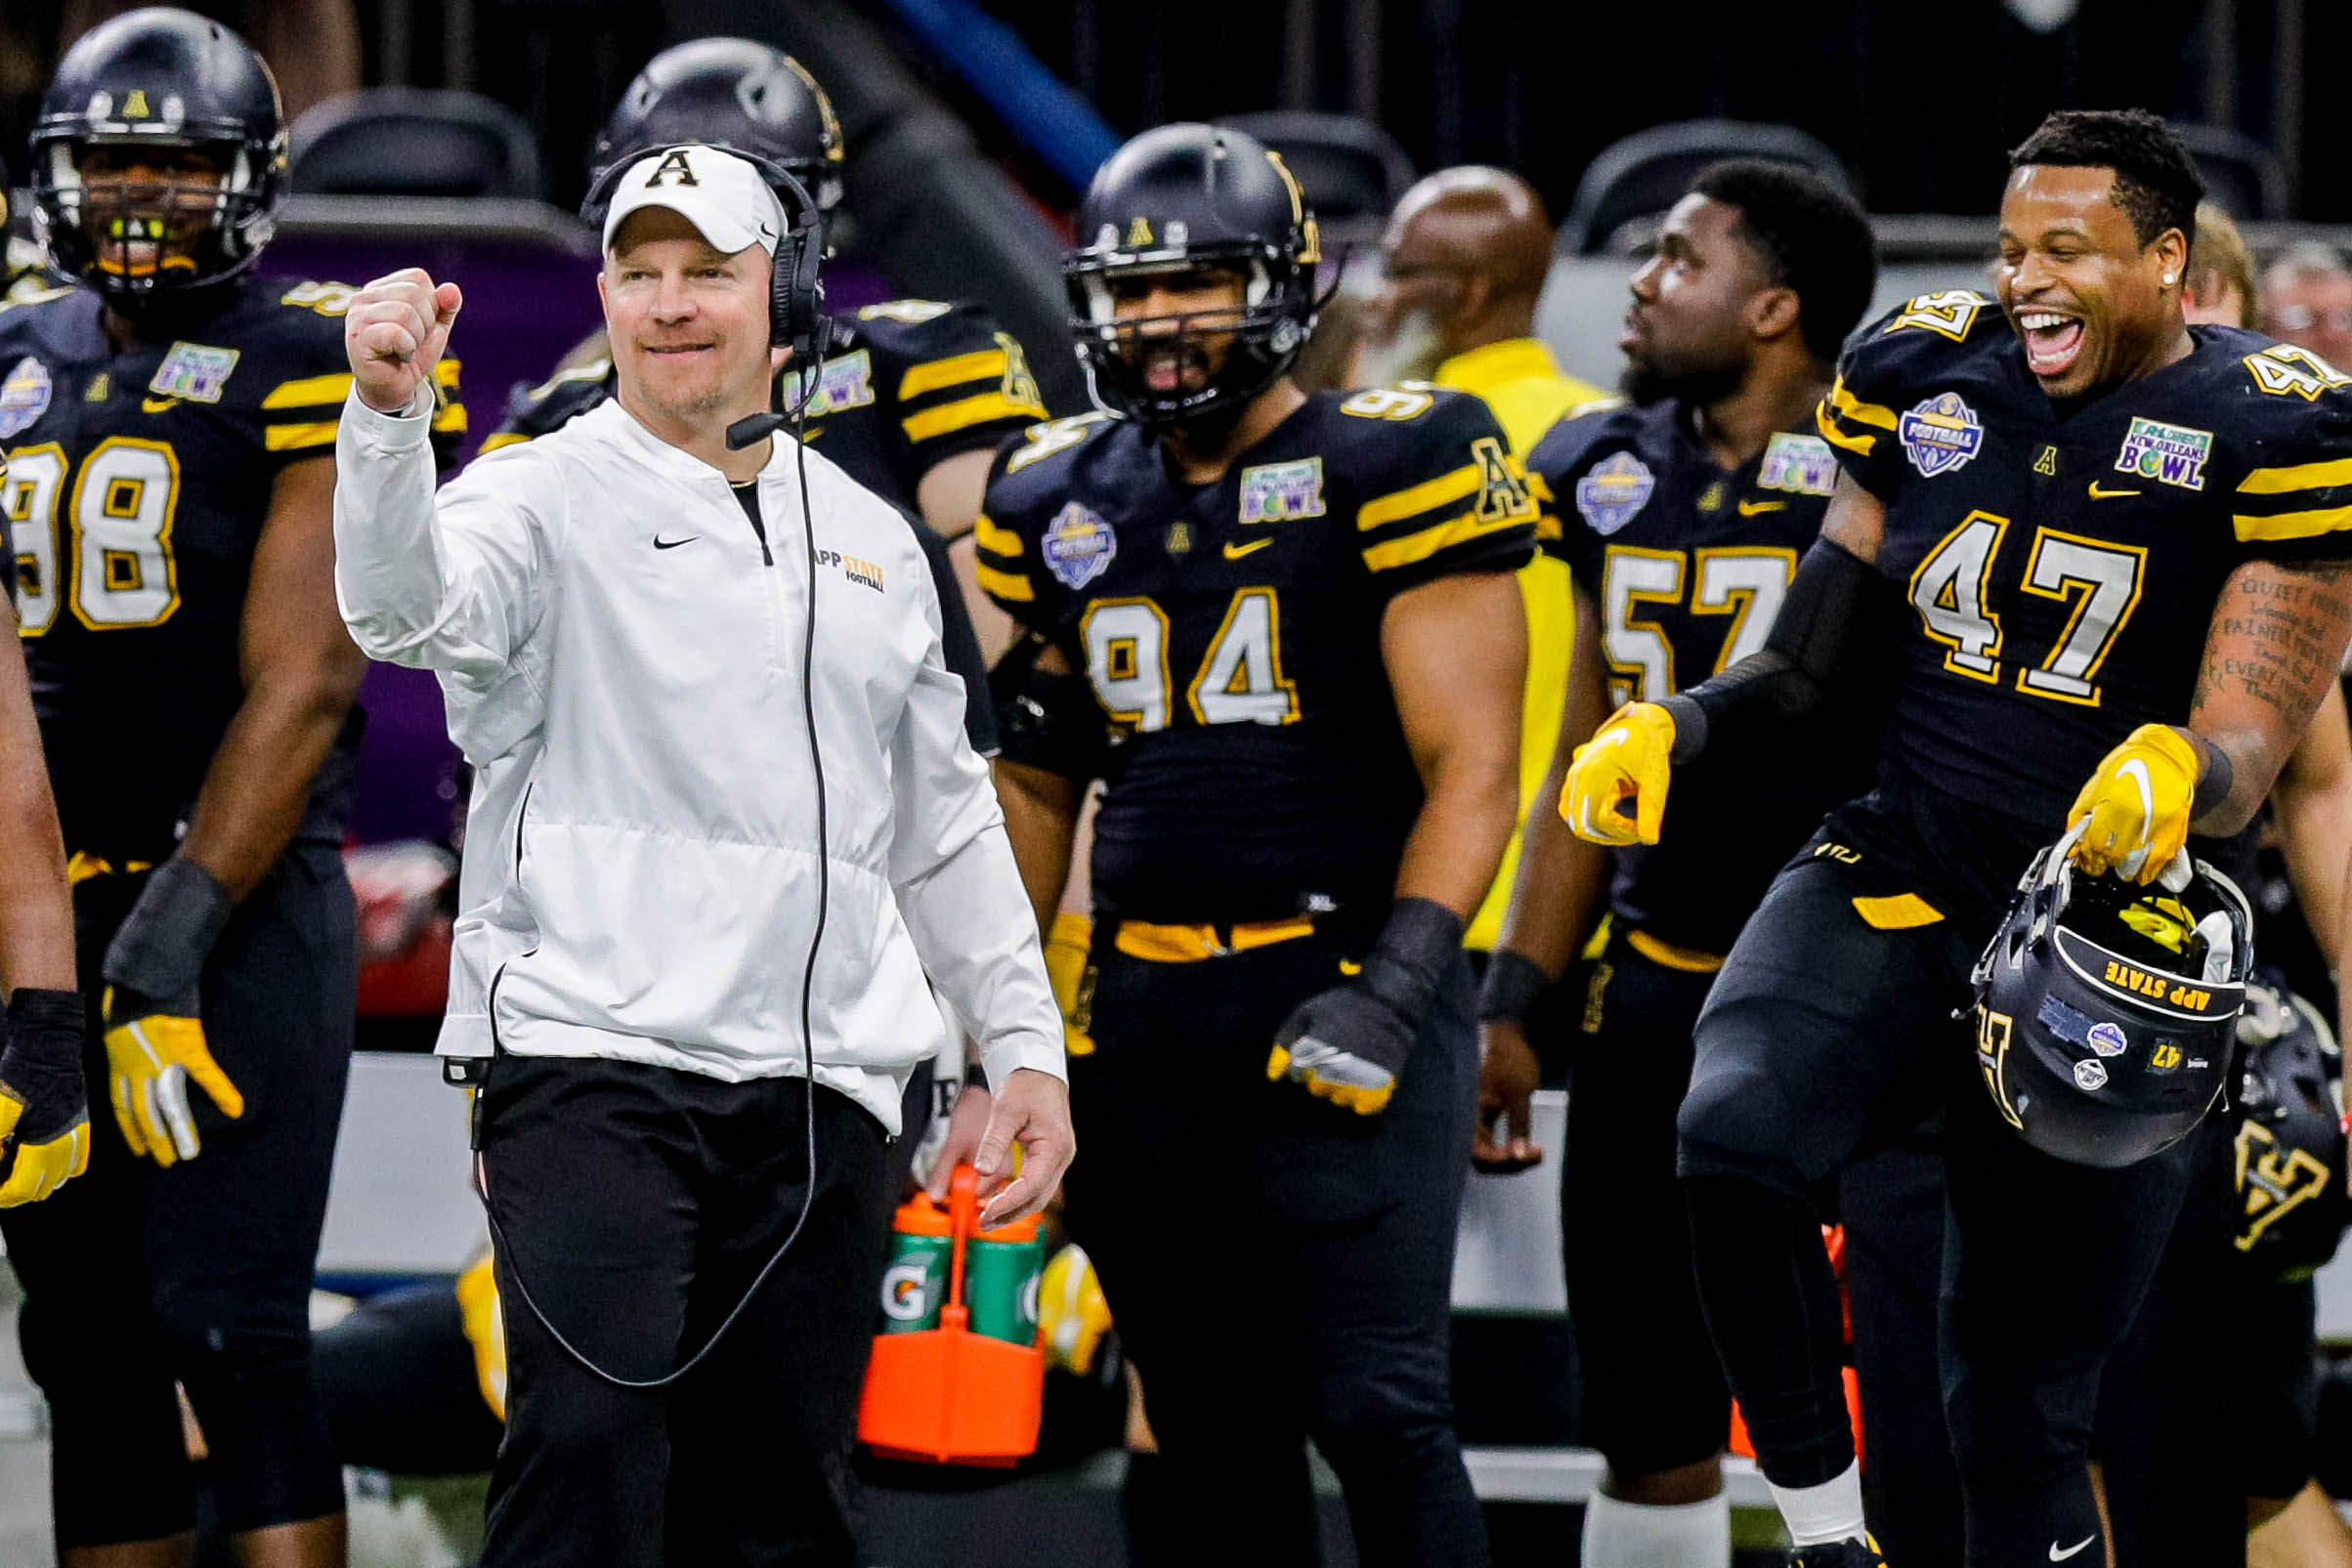 NCAA Football: New Orleans Bowl-Middle Tennessee at Appalachian State